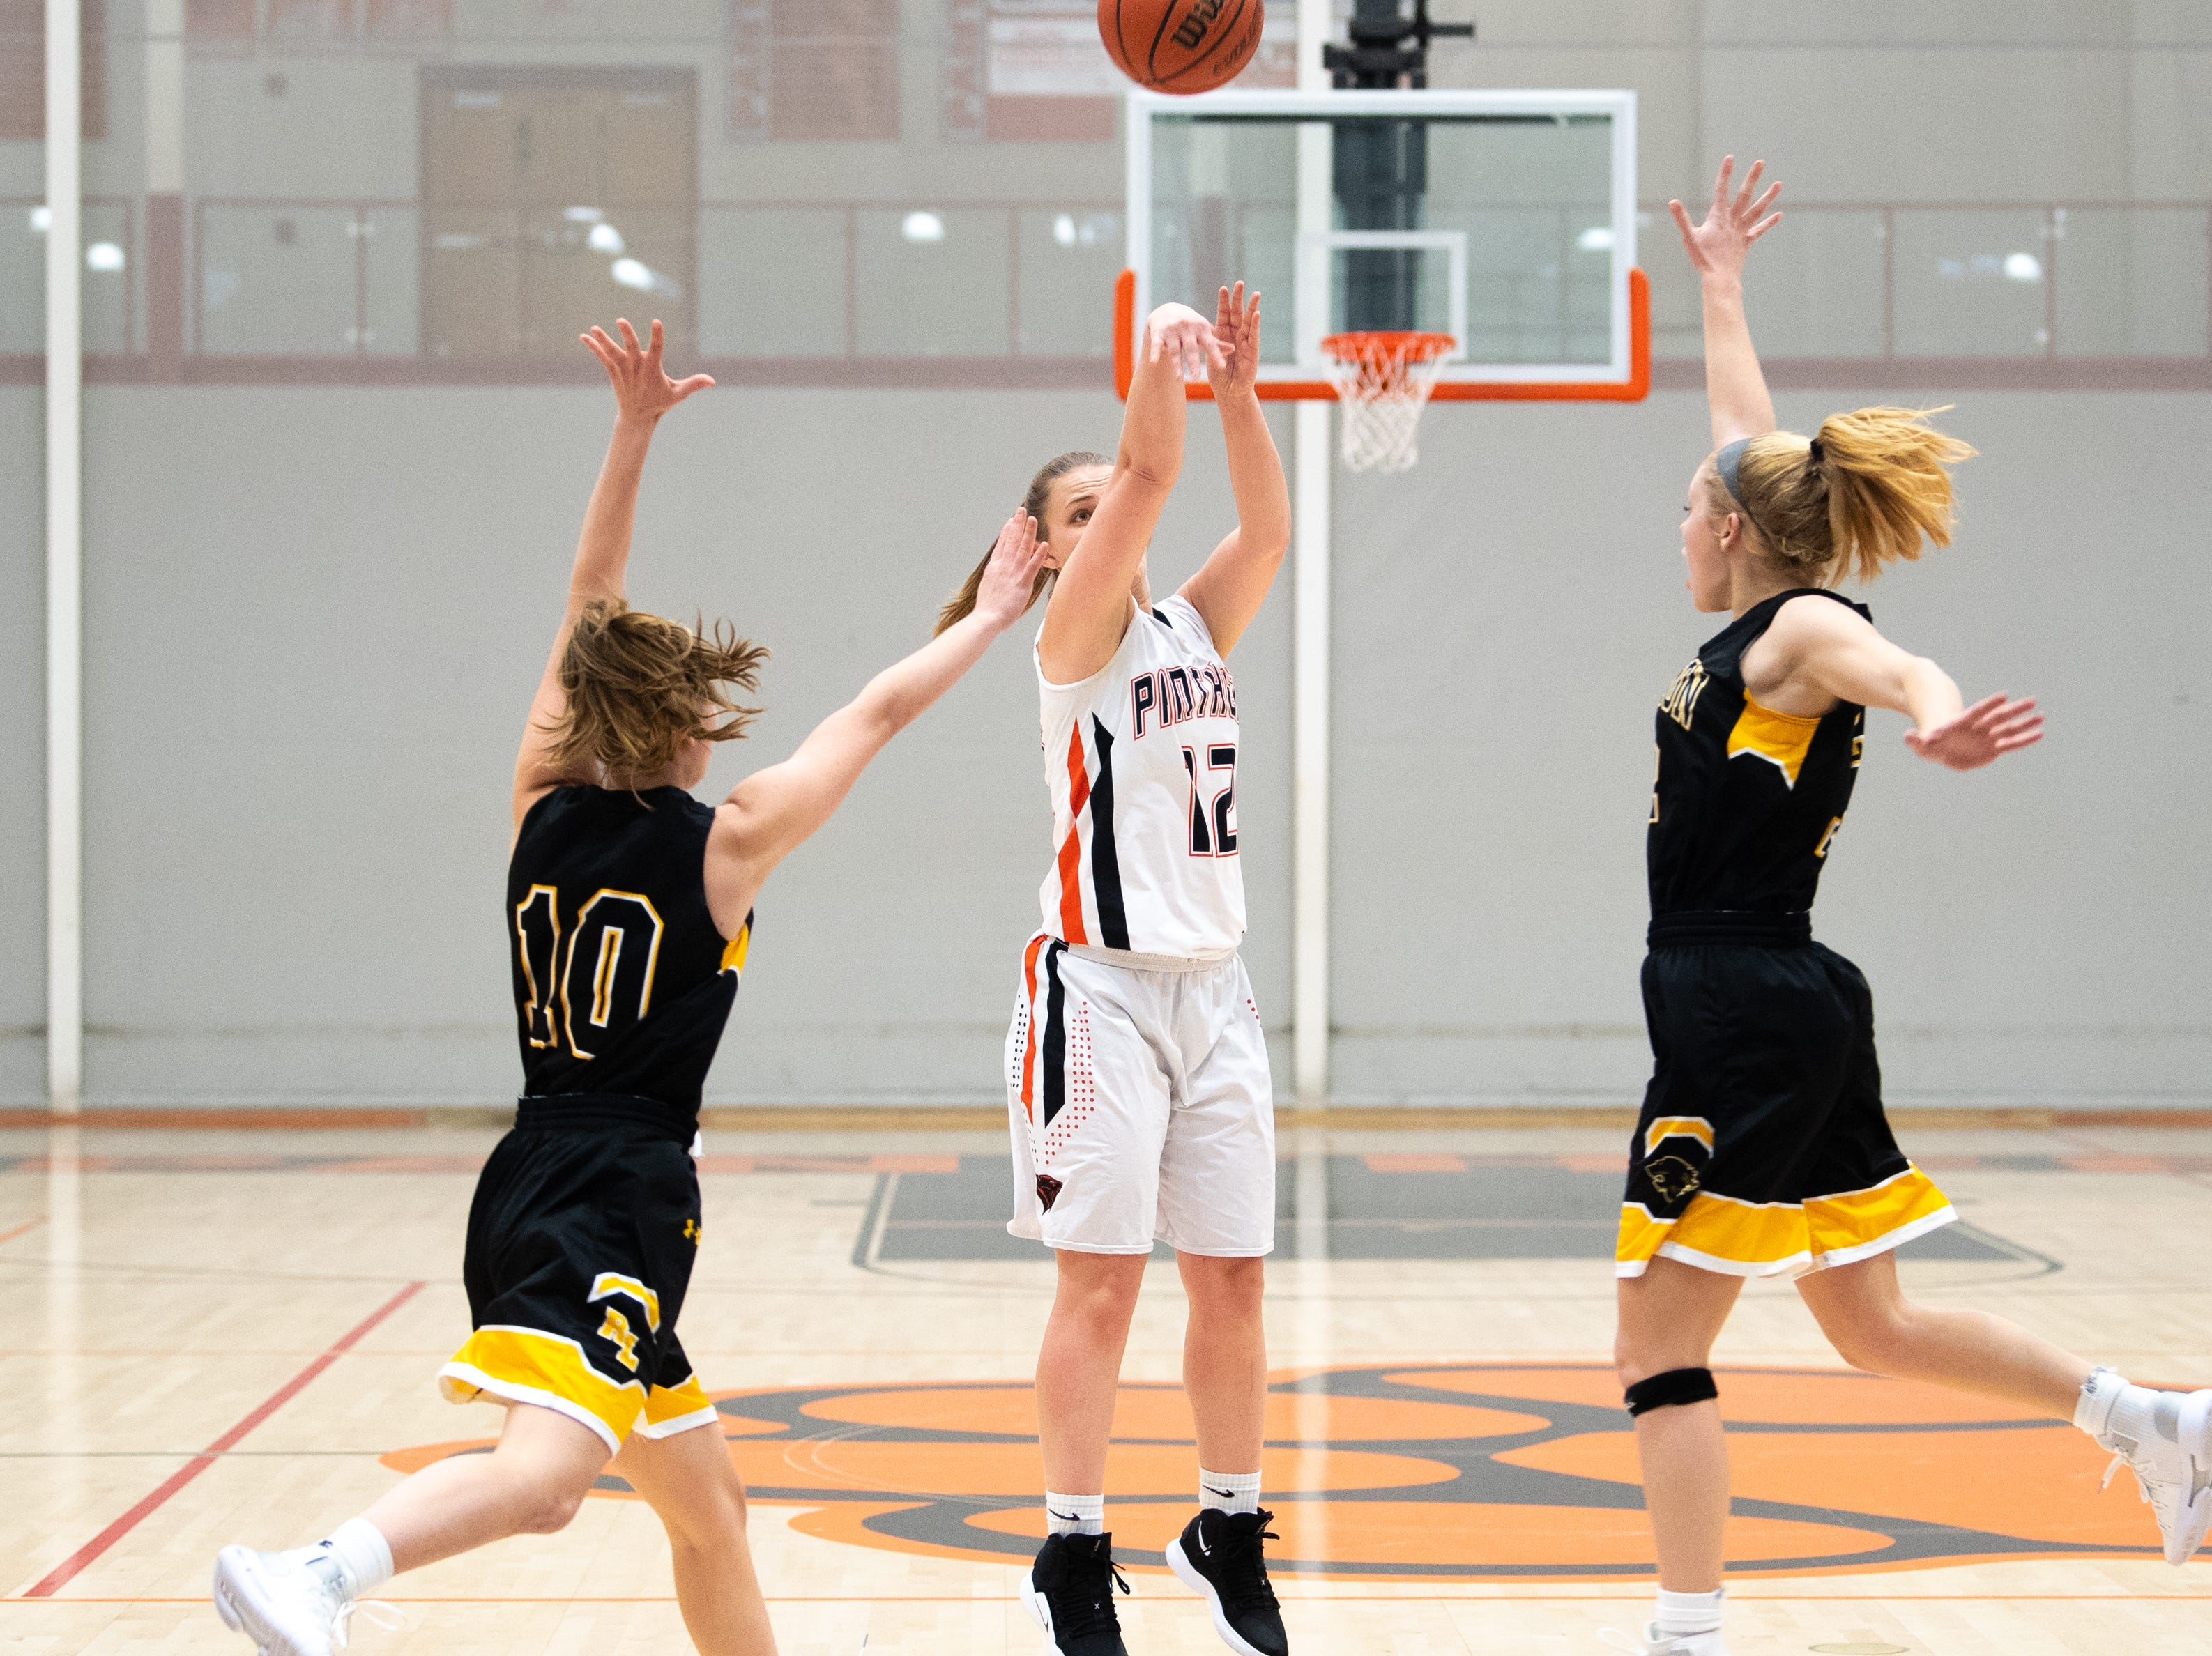 Katie Fabbri (12) puts up the three during the girls' basketball game between Central York and Red Lion at Central York, Tuesday, December 11, 2018. The Panthers defeated the Lions 40-38.